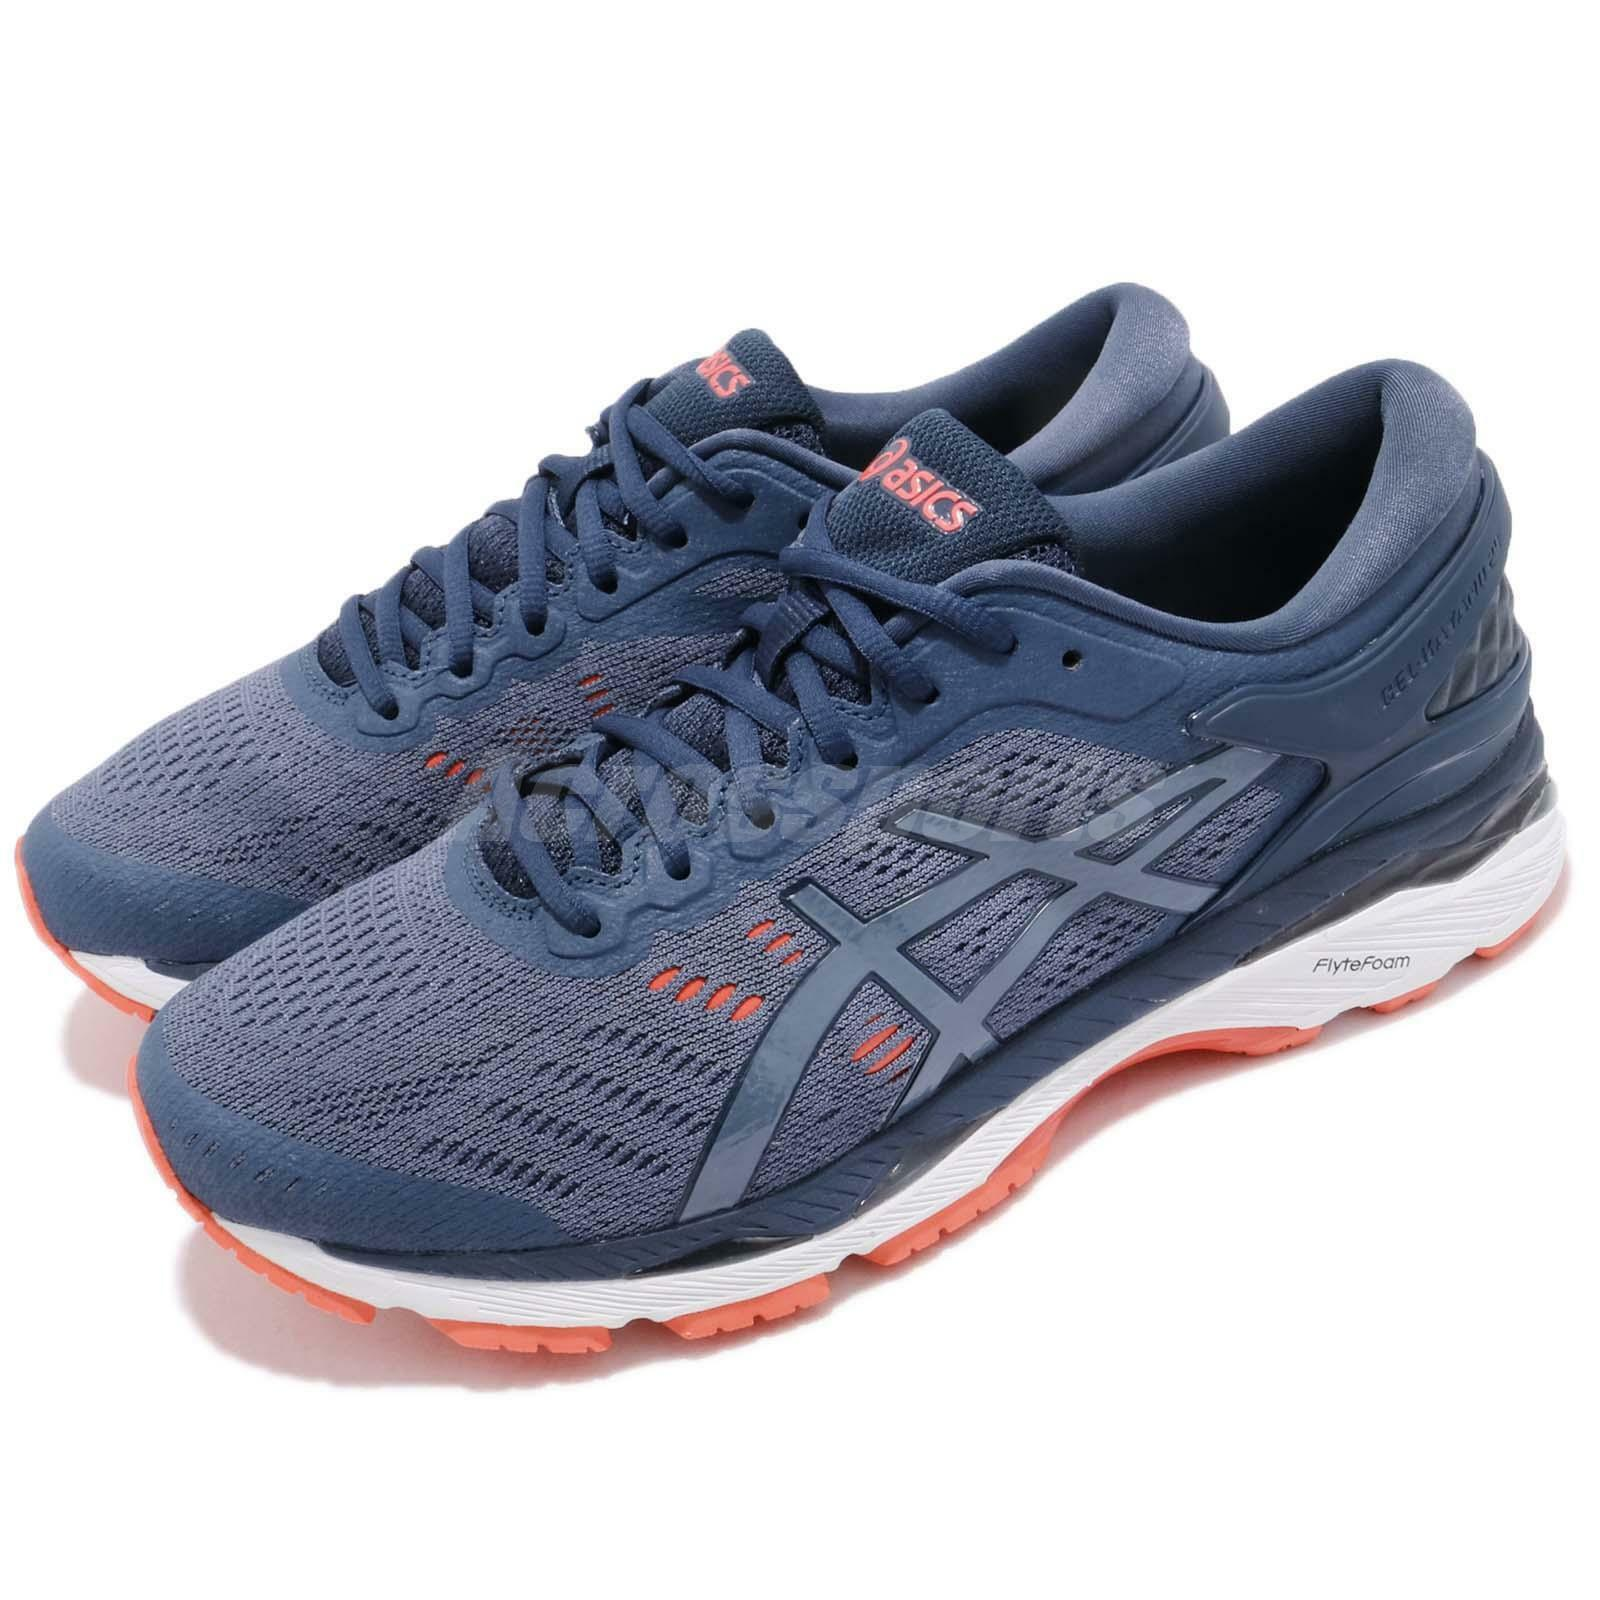 Asics Gel-Kayano 24 2E Wide Smoke blueee White Men Running shoes Sneaker T7A0N-5656